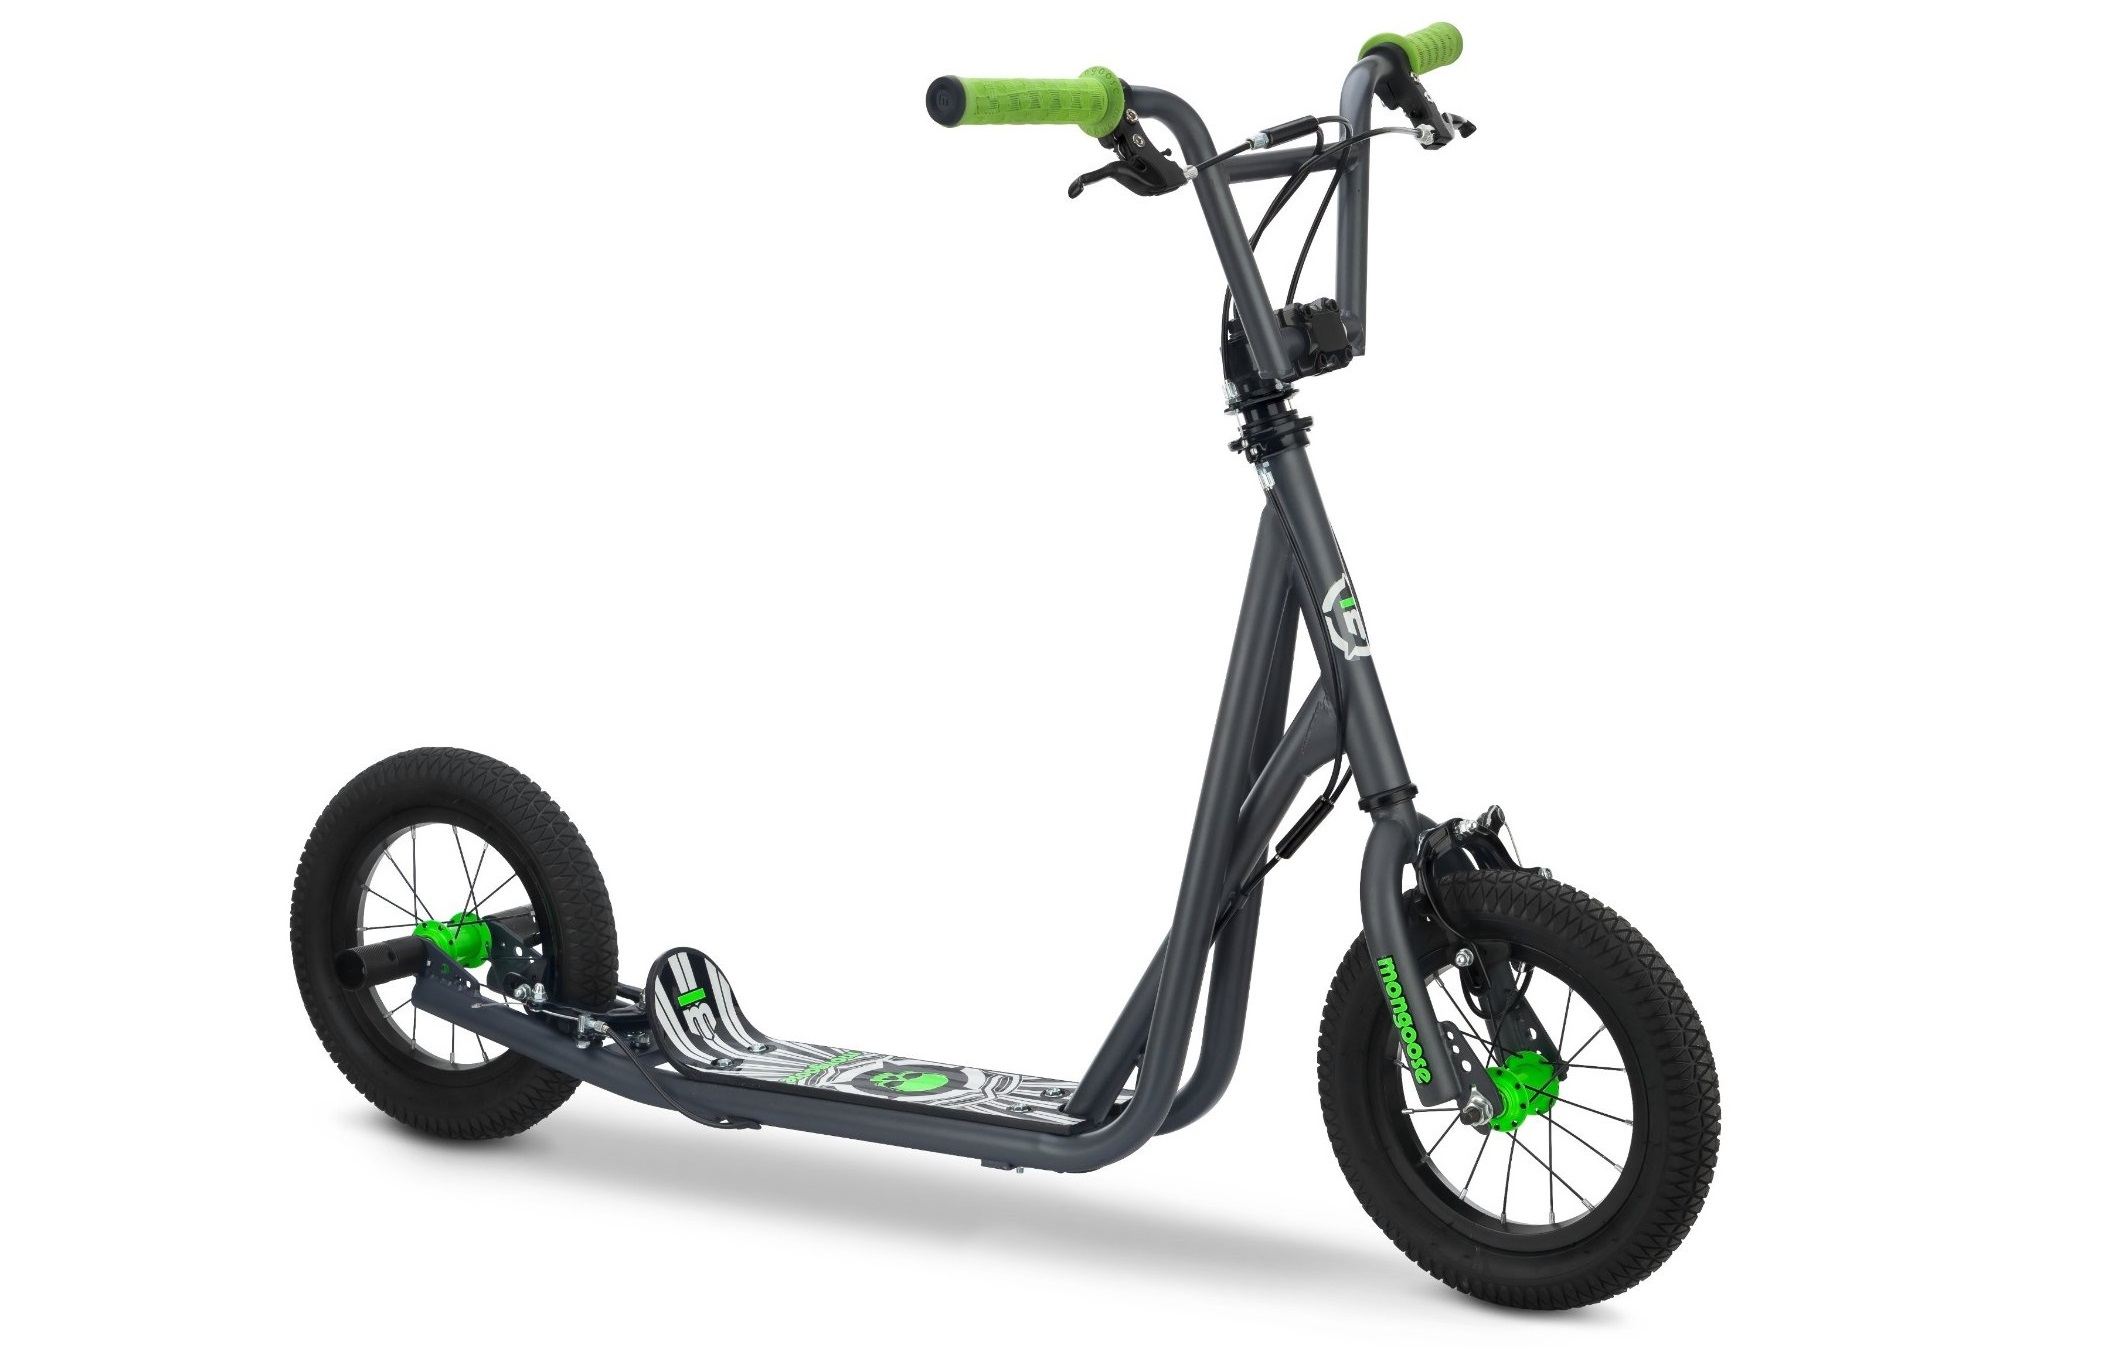 Best Kick Scooter for Kids - Buyer's Guide ...